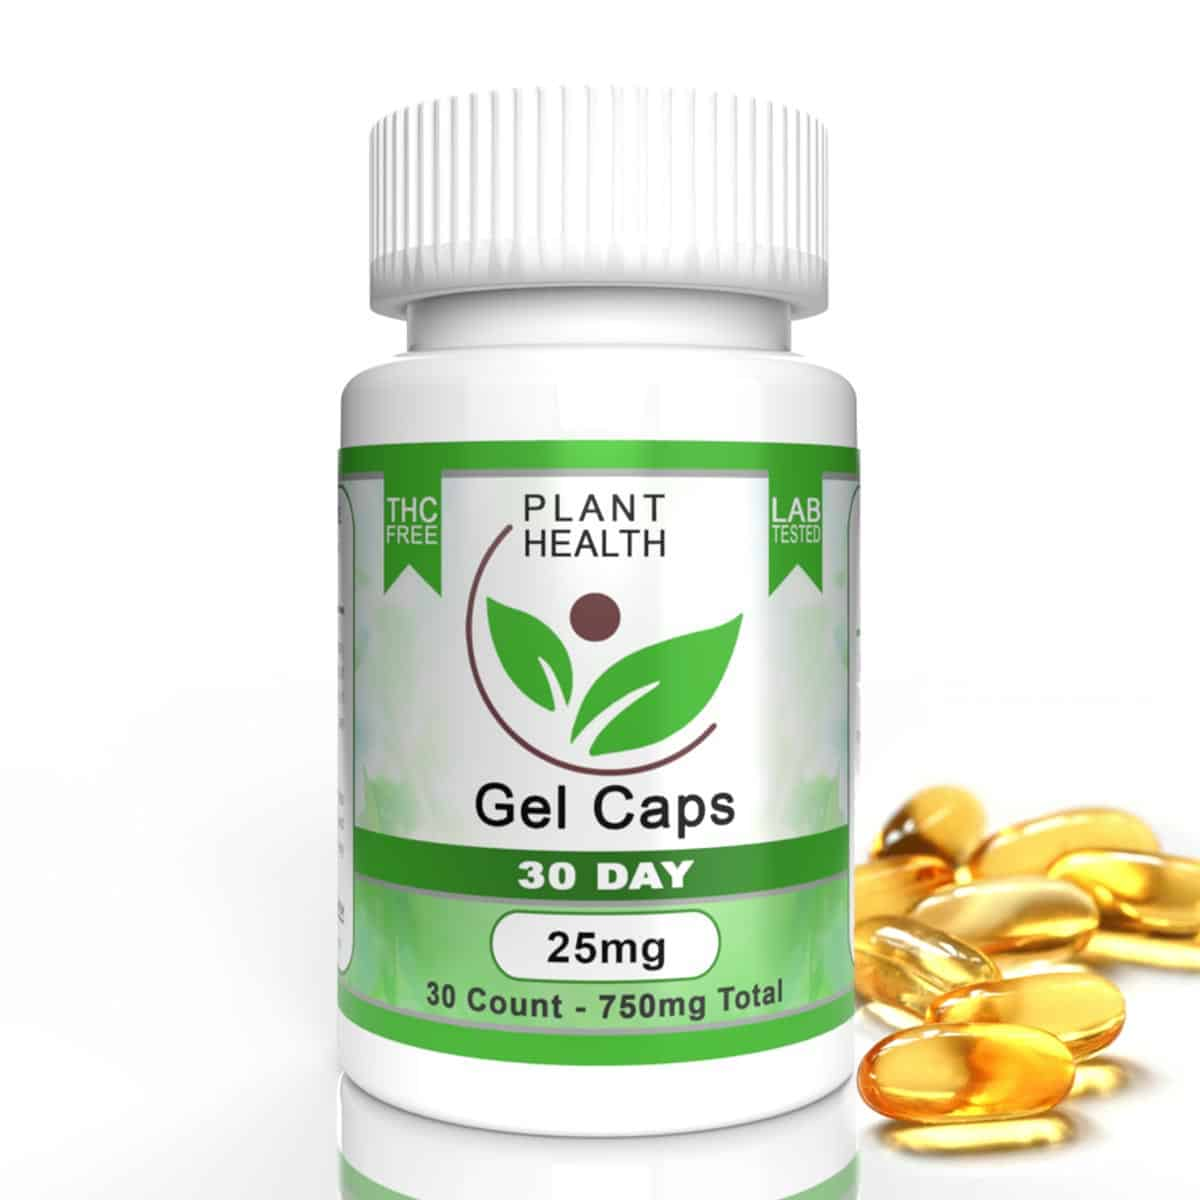 Plant-Health-750mg-CBD-Gel-Caps-30-Count-25mg-CBD-Each-3D